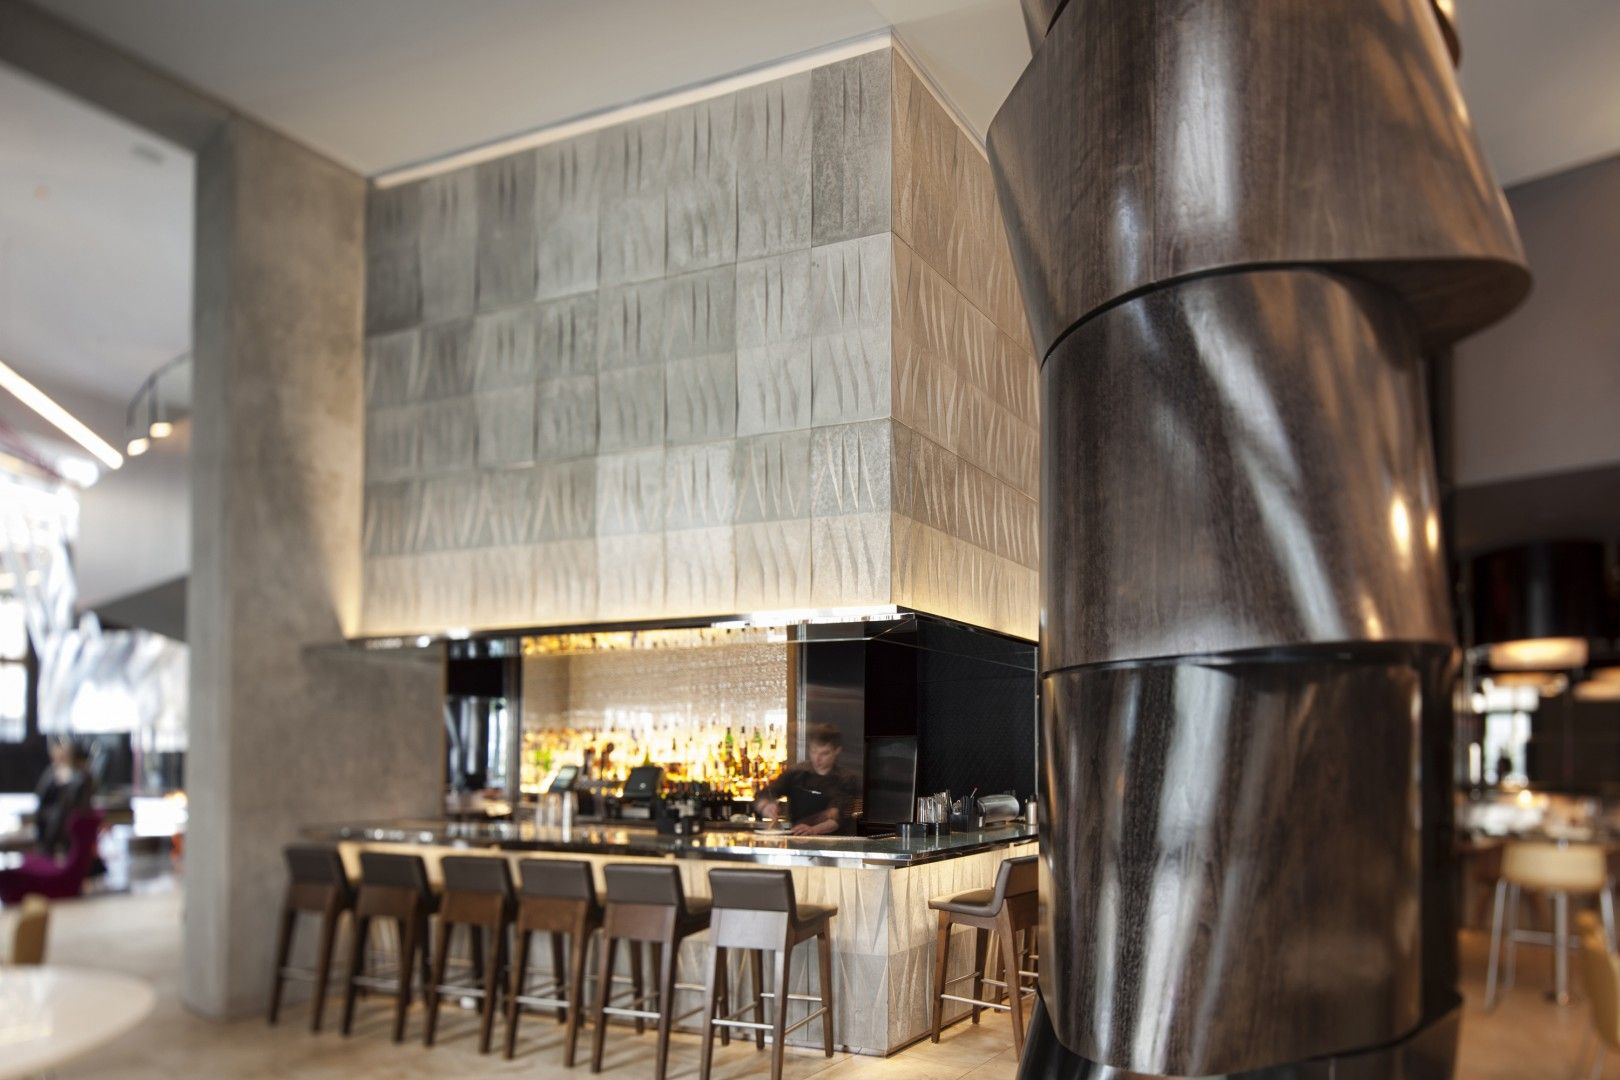 Dining in Style at the W Hotel Seattle. - Skylab Architecture See more details at & Dining in Style at the W Hotel Seattle. - Skylab Architecture See ...